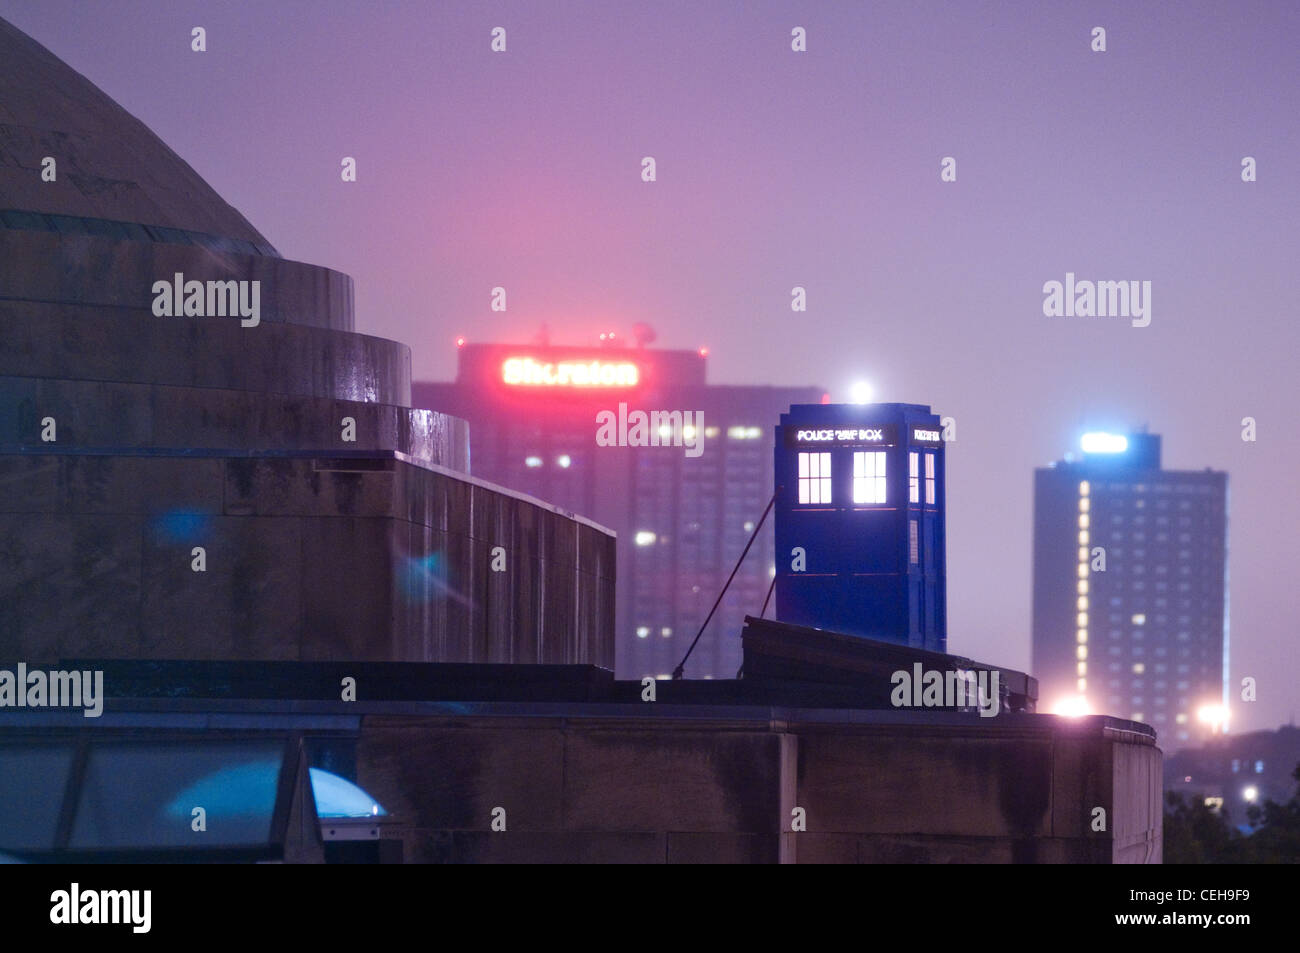 Hackers installed an illuminated 'Doctor Who'-style police call box ('TARDIS') on the roof of Building - Stock Image